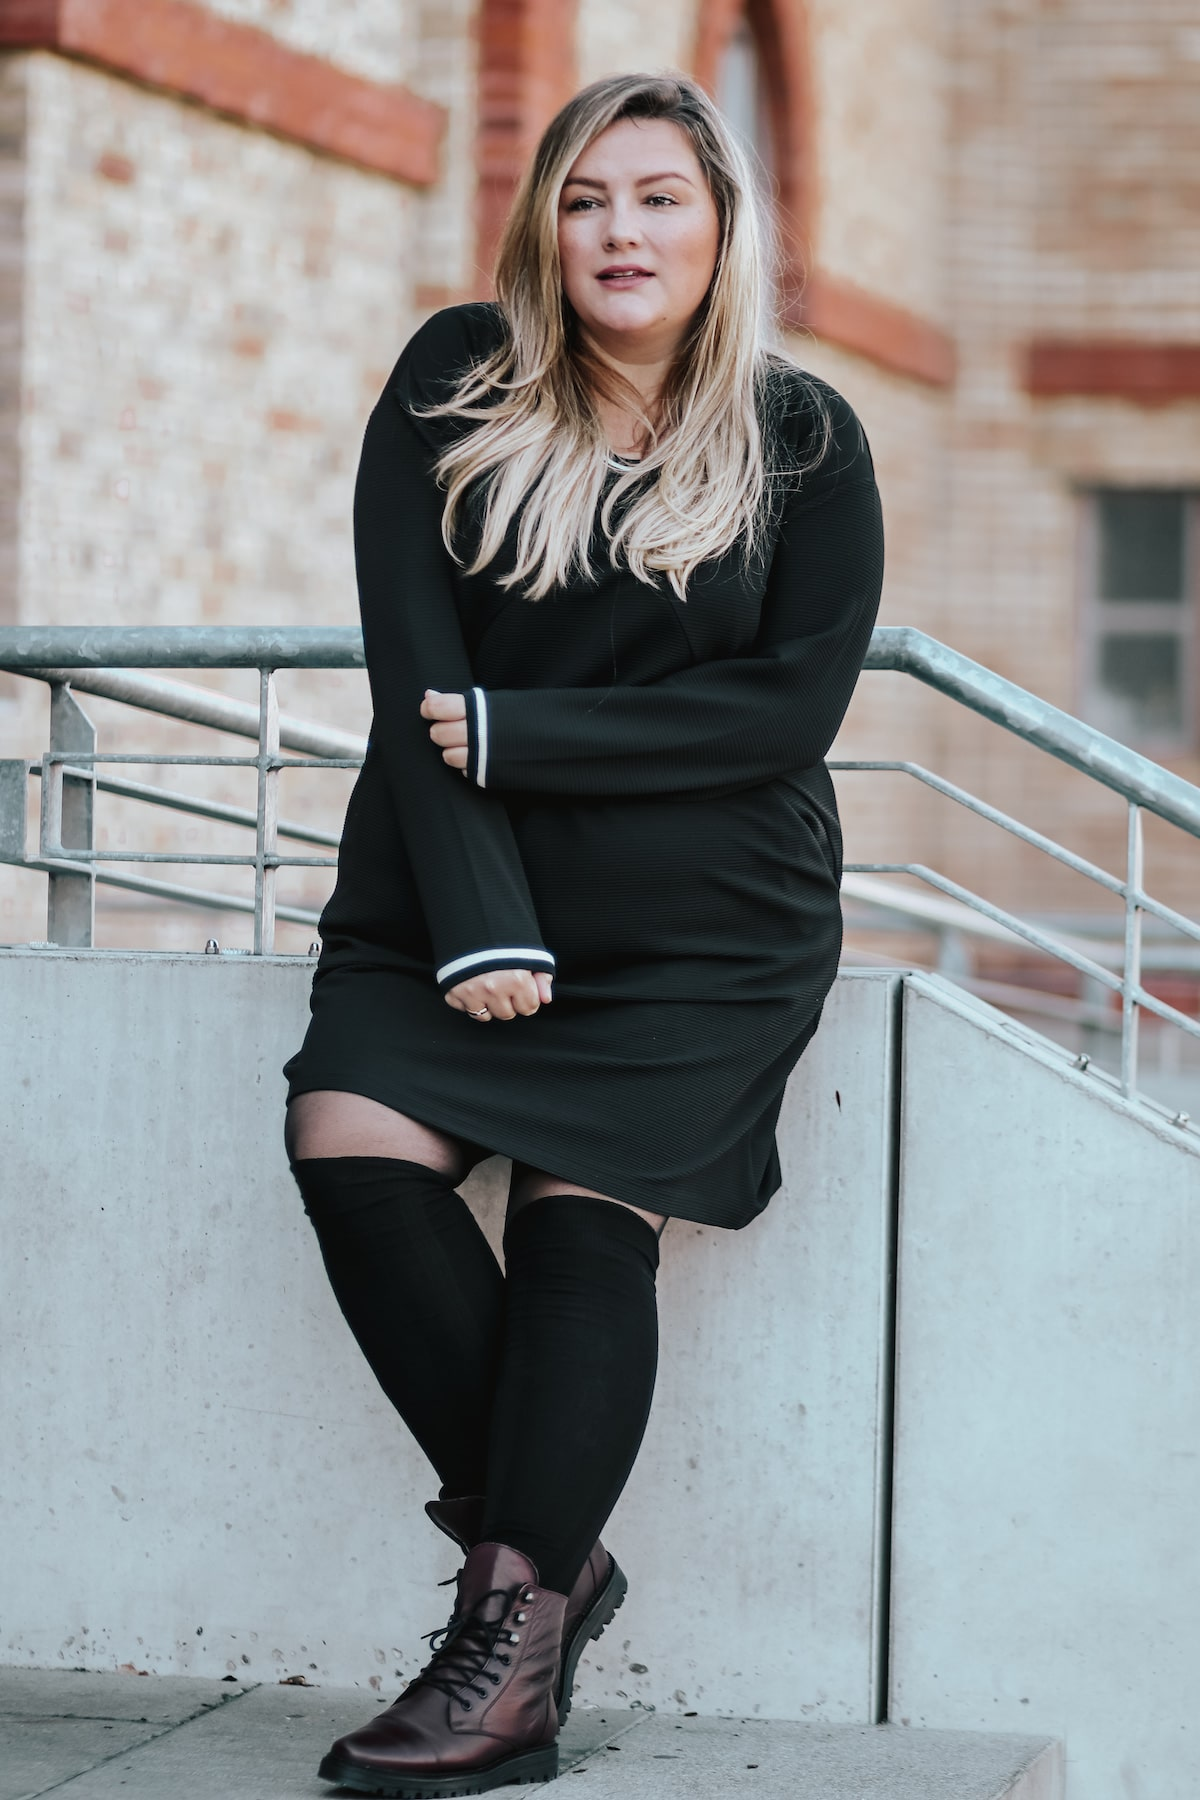 Sporty BLACK DRESS & Overknee Socks / Plus Size Outfit